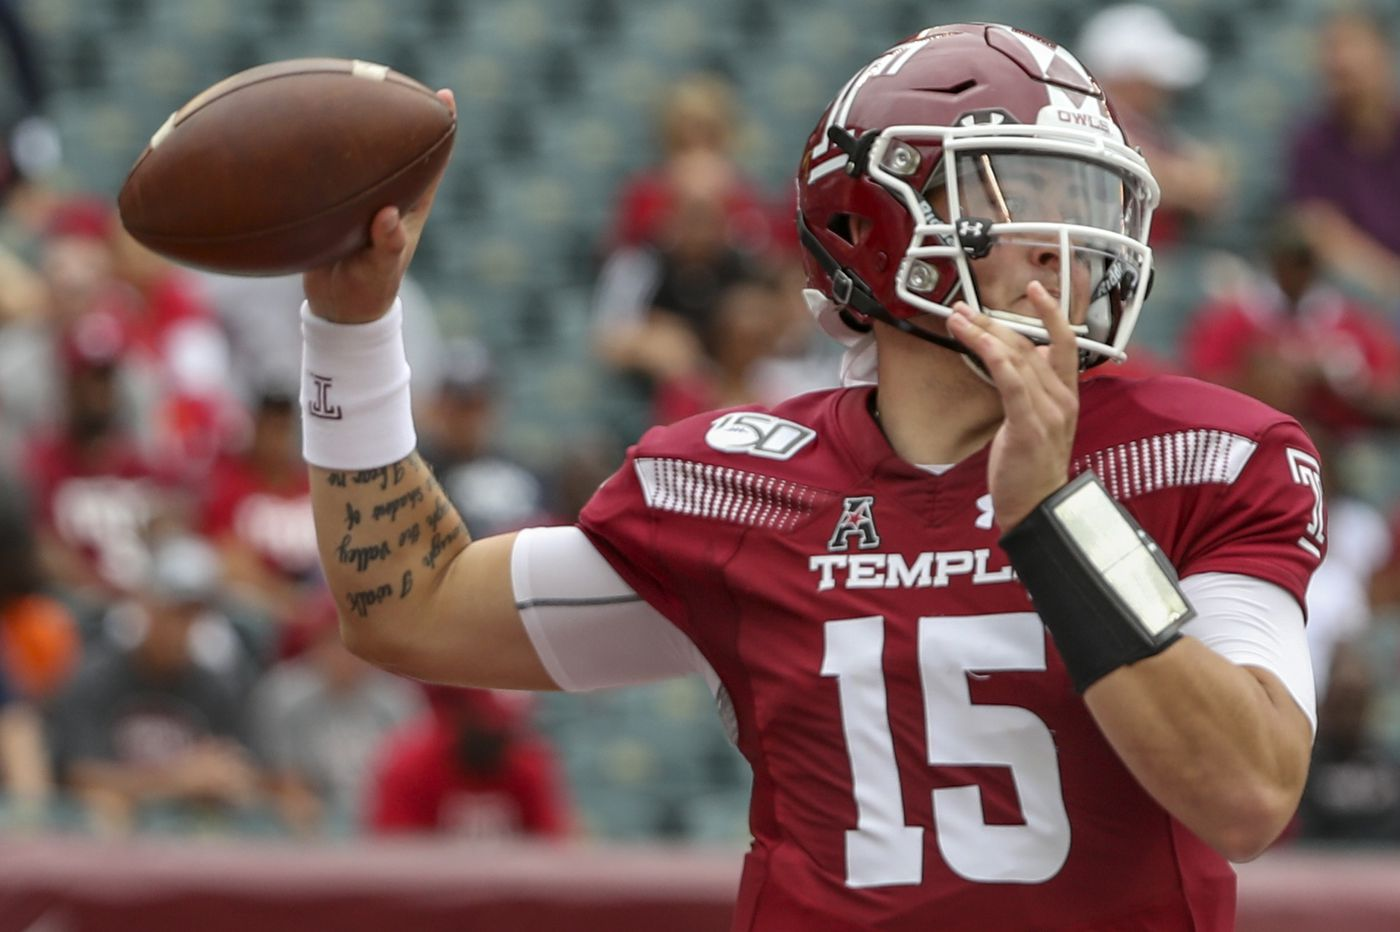 Temple at Buffalo: Five things to watch